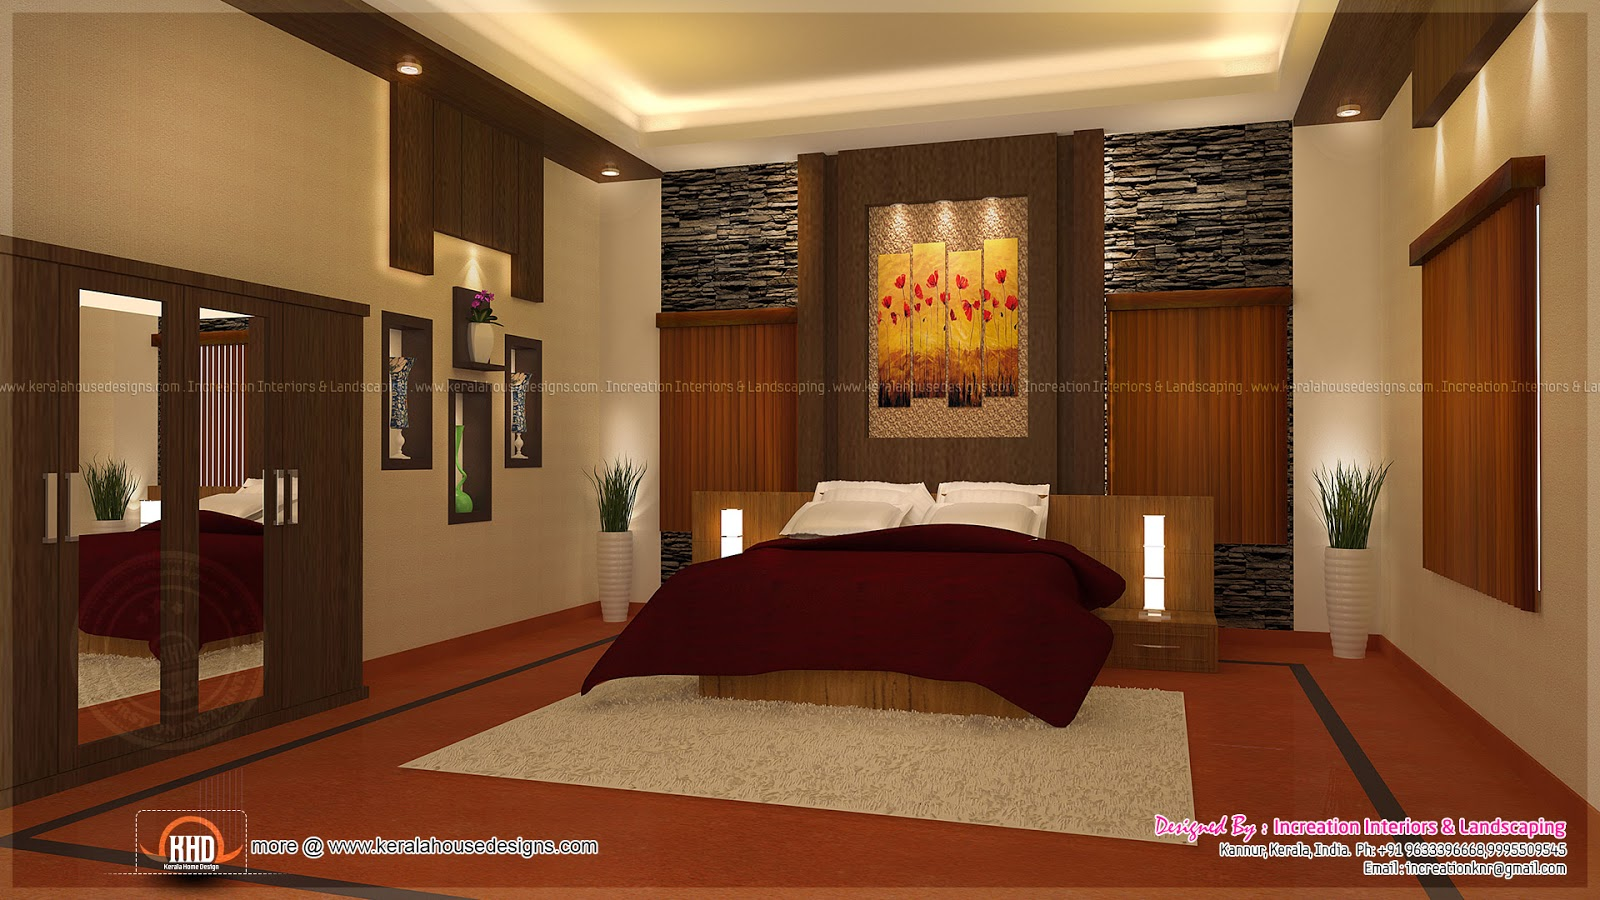 House interior ideas in 3d rendering kerala home design for Home plans with interior photos